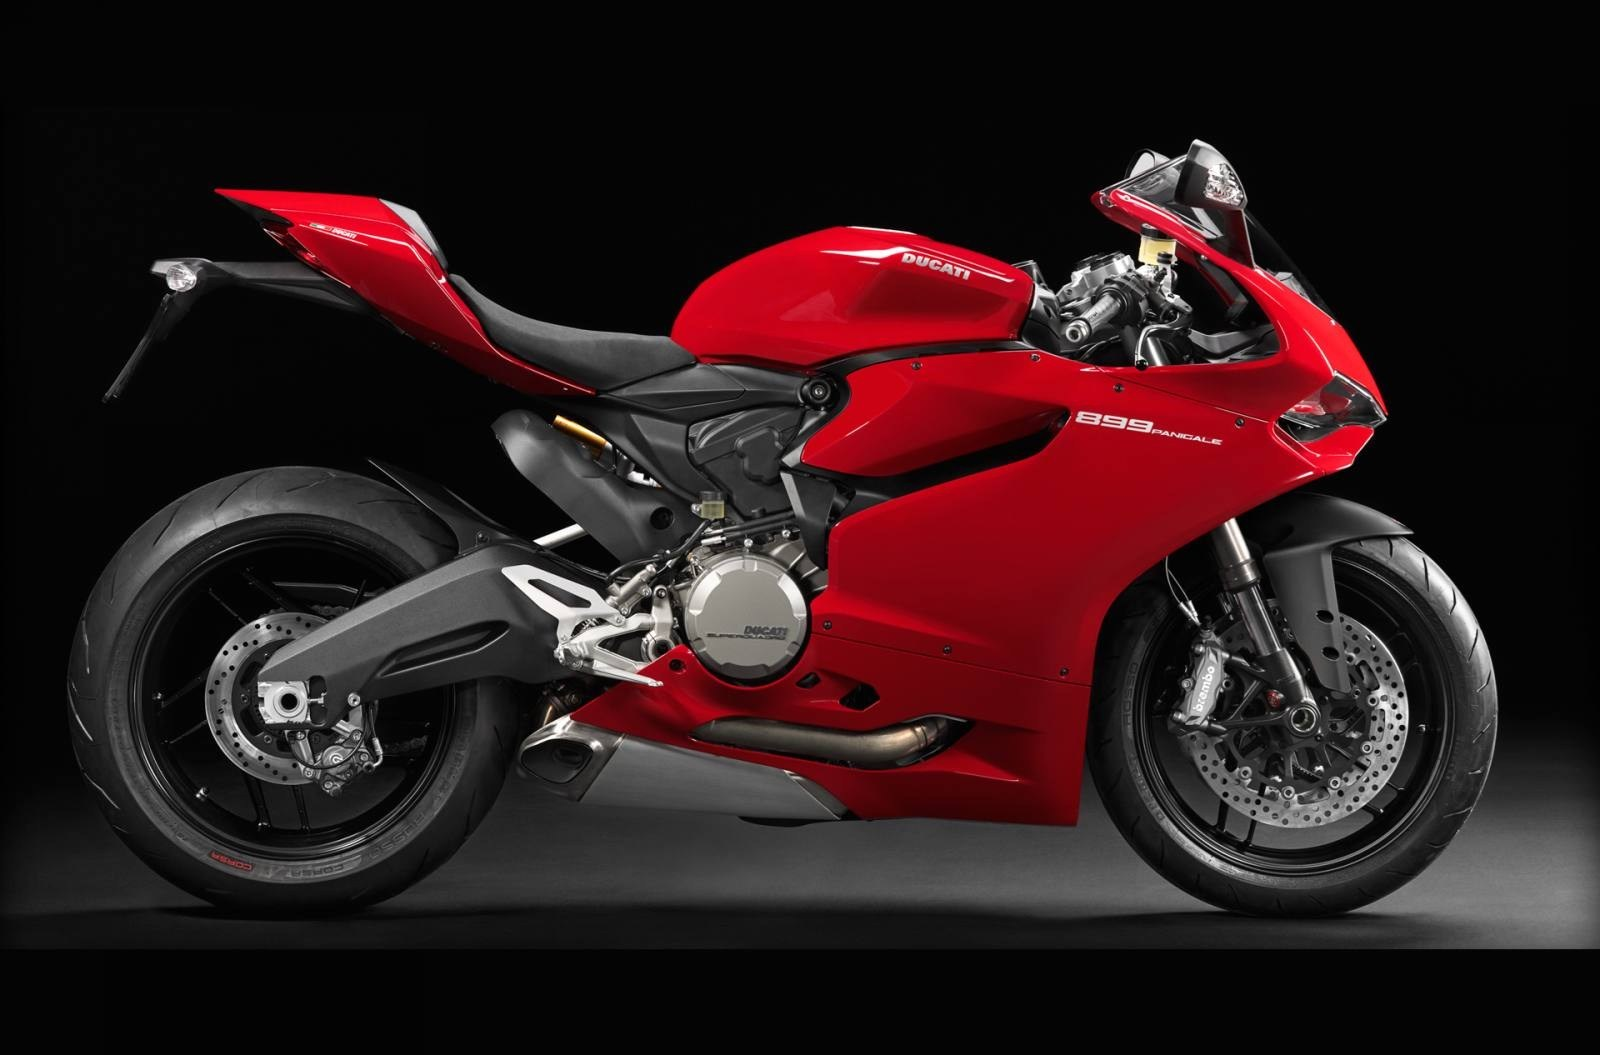 2014 Ducati Superbike 899 Panigale - Red, motorcycle listing